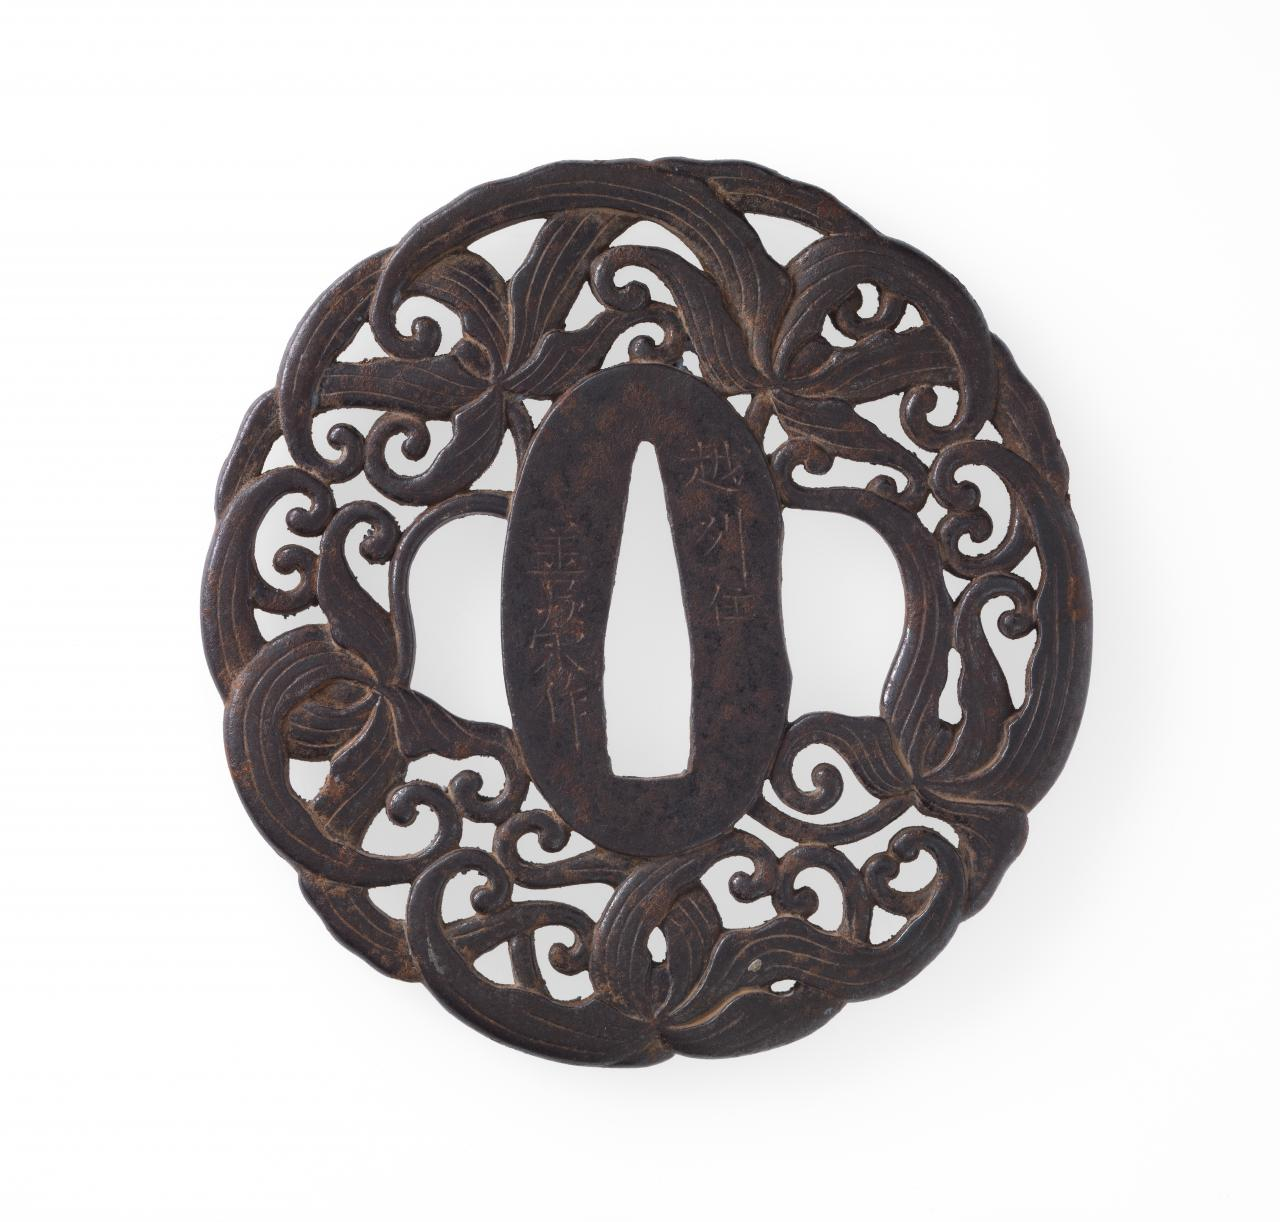 Sword guard with lily design